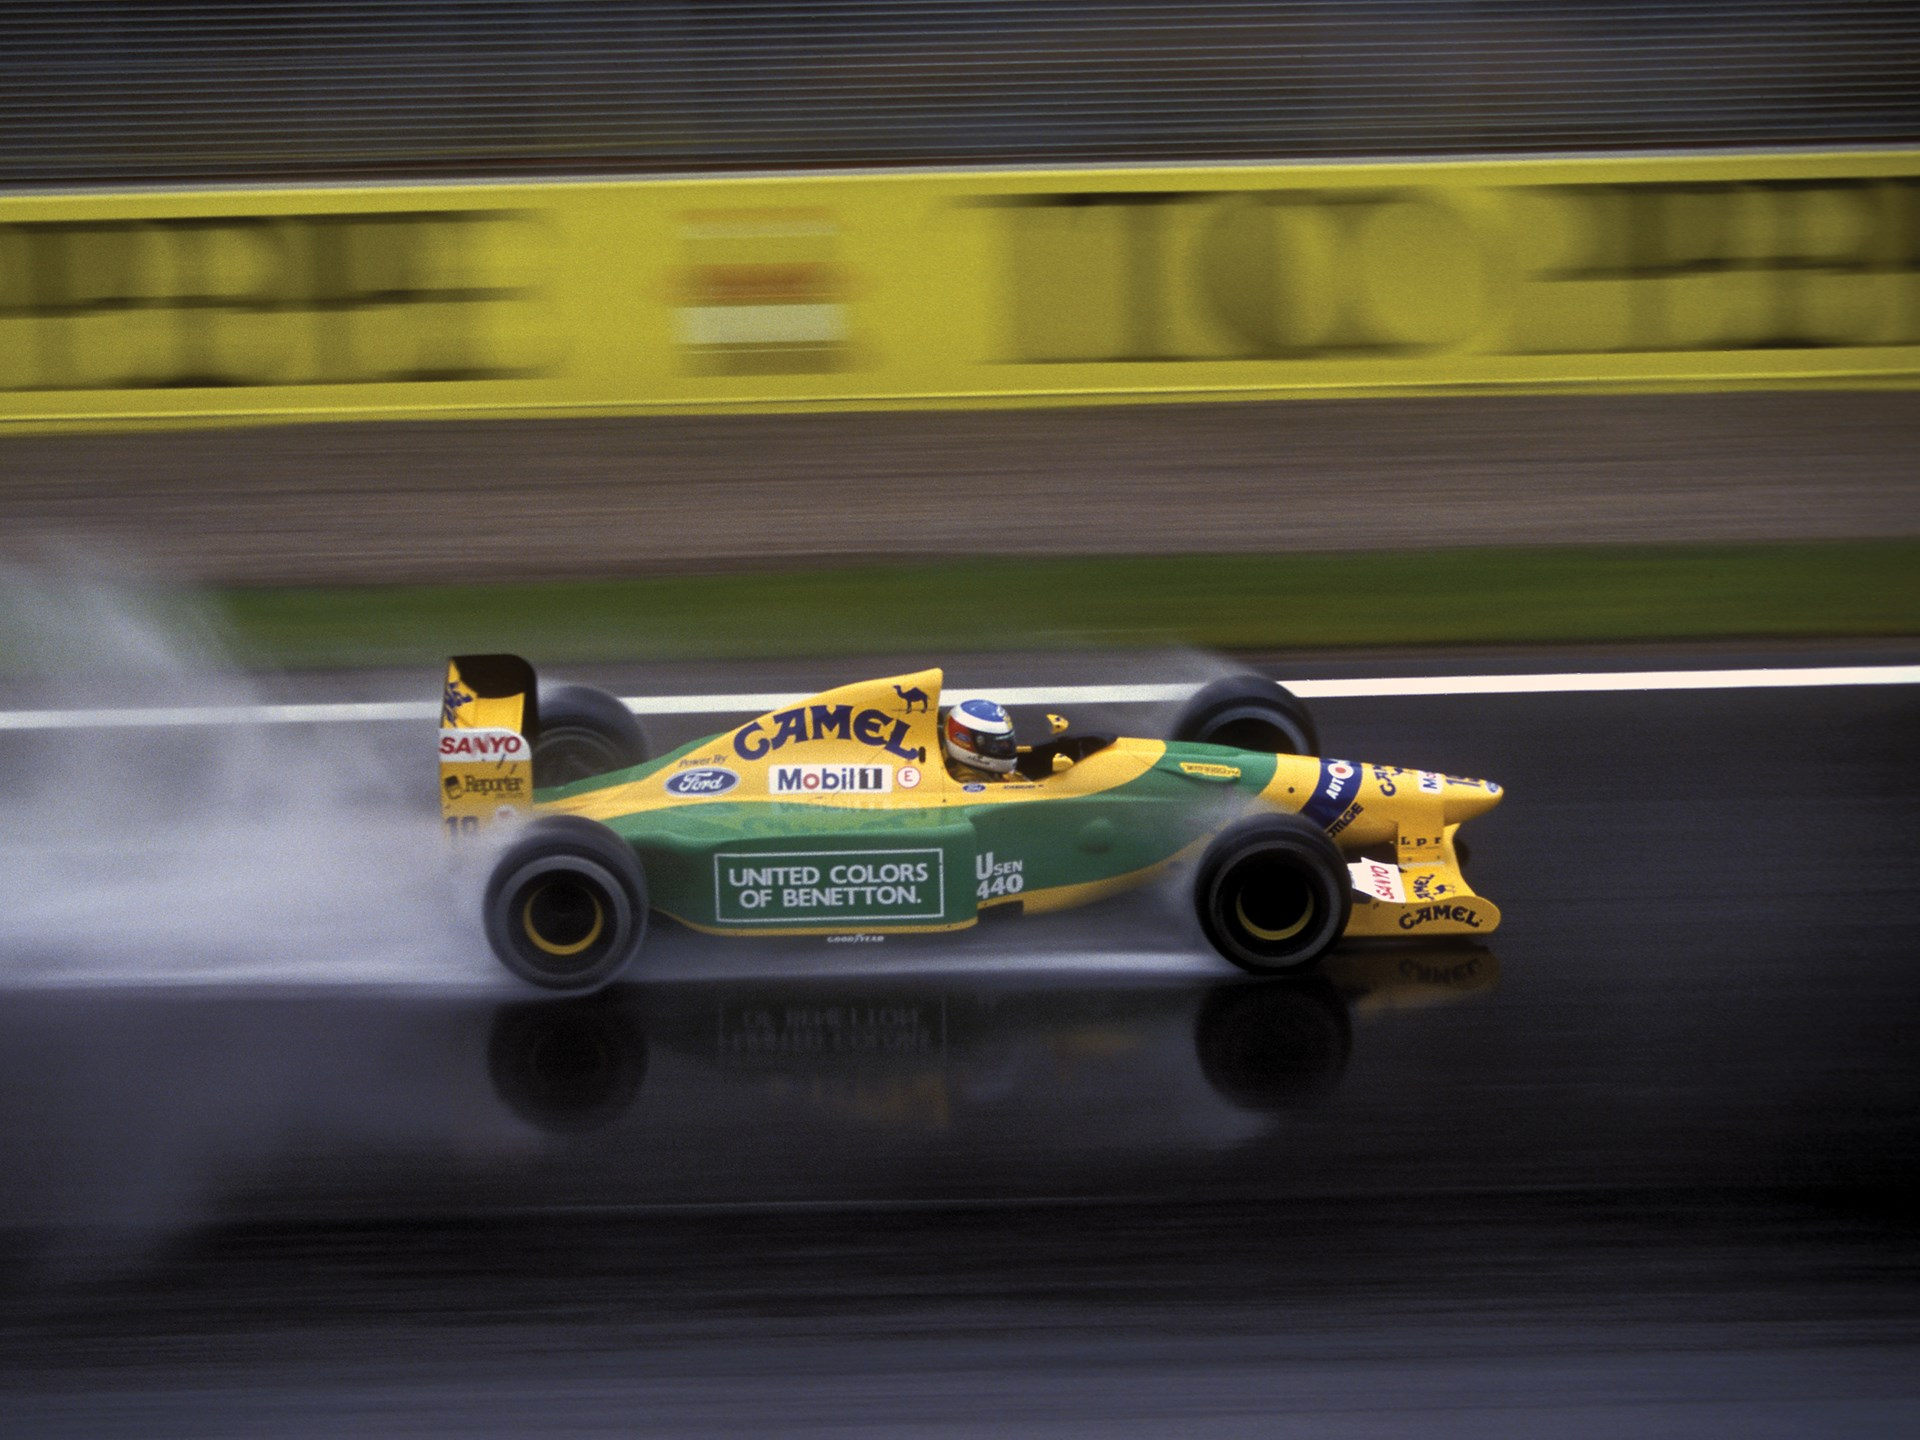 Michael Schumacher en route to a second place finish at the 1992 Spanish Grand Prix.